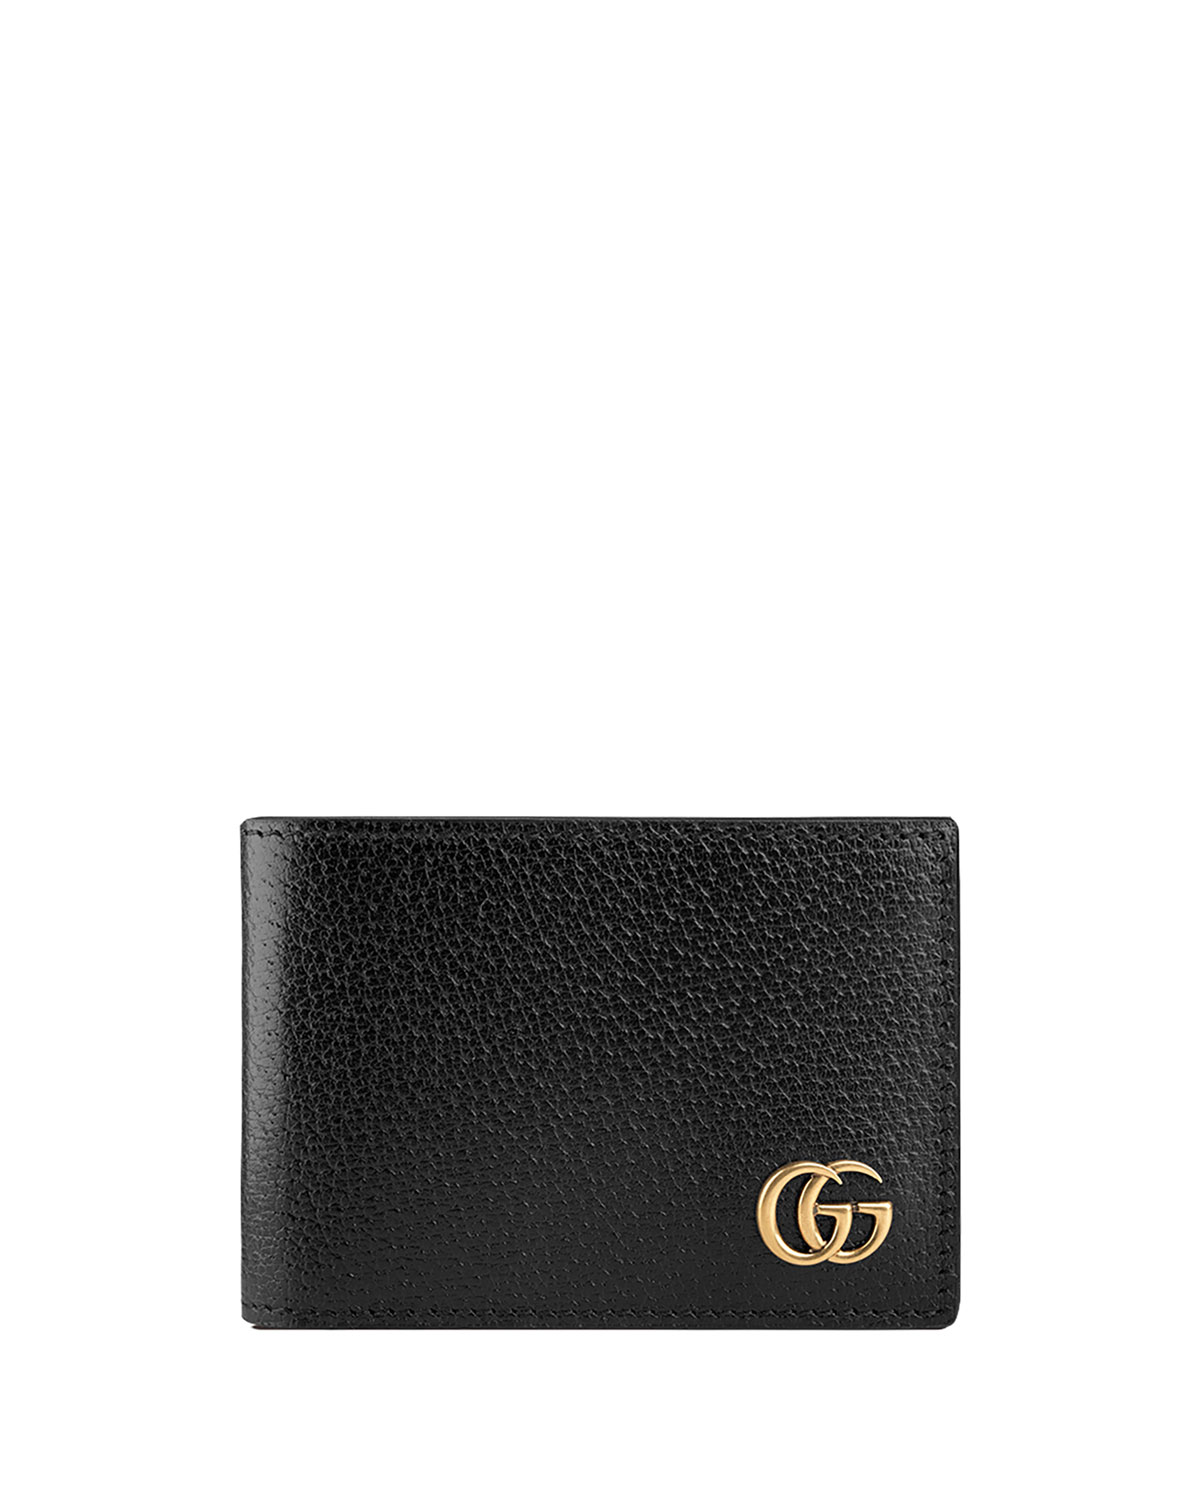 bf2ab164c2c3 Gucci GG Marmont Leather Bi-Fold Wallet | Neiman Marcus